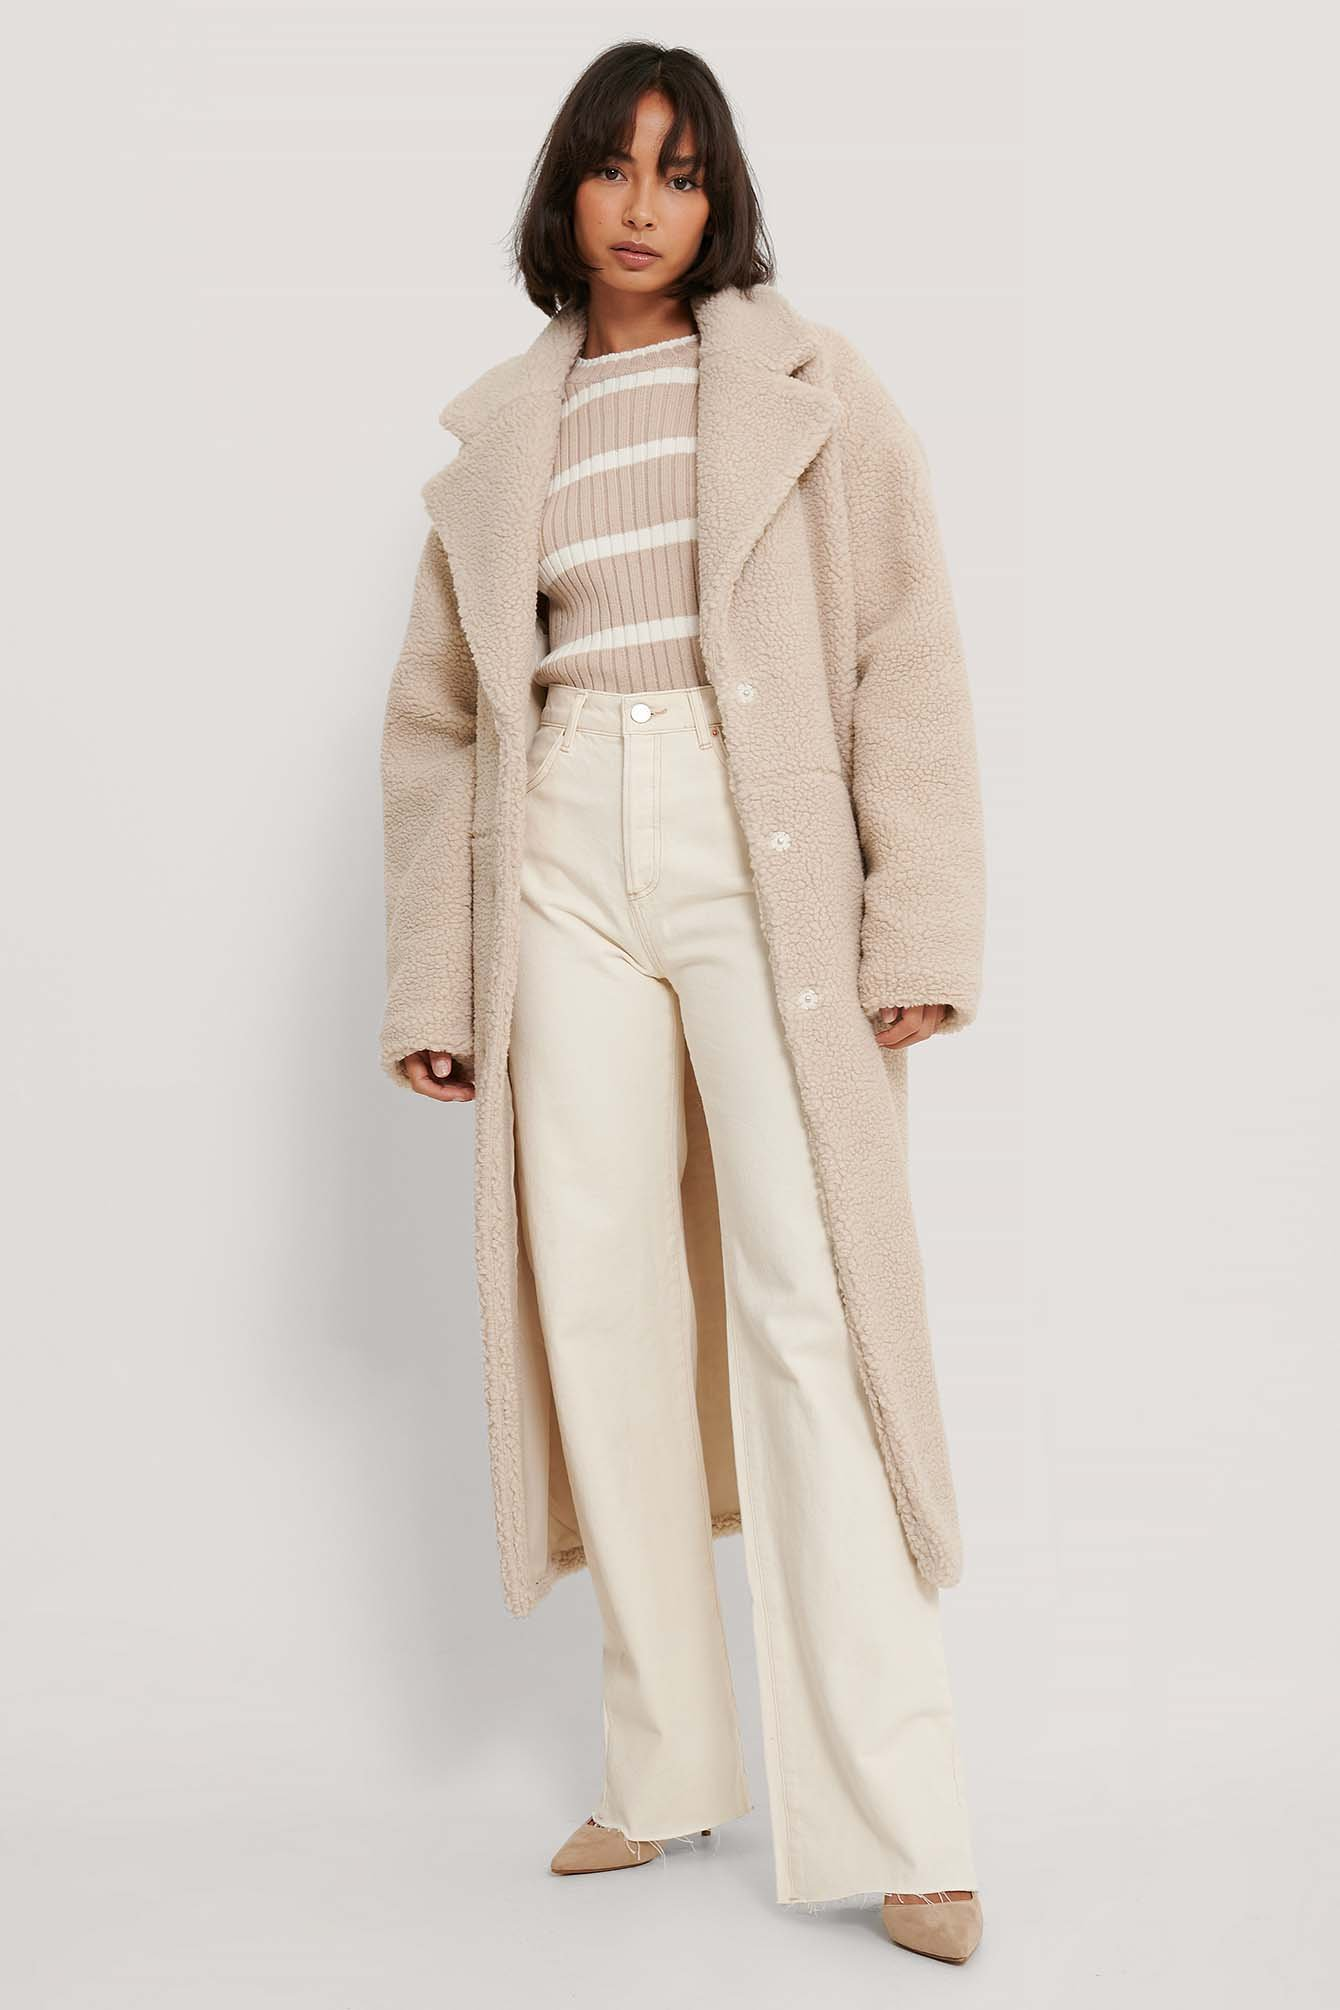 Light Beige Oversized Long Teddy Coat